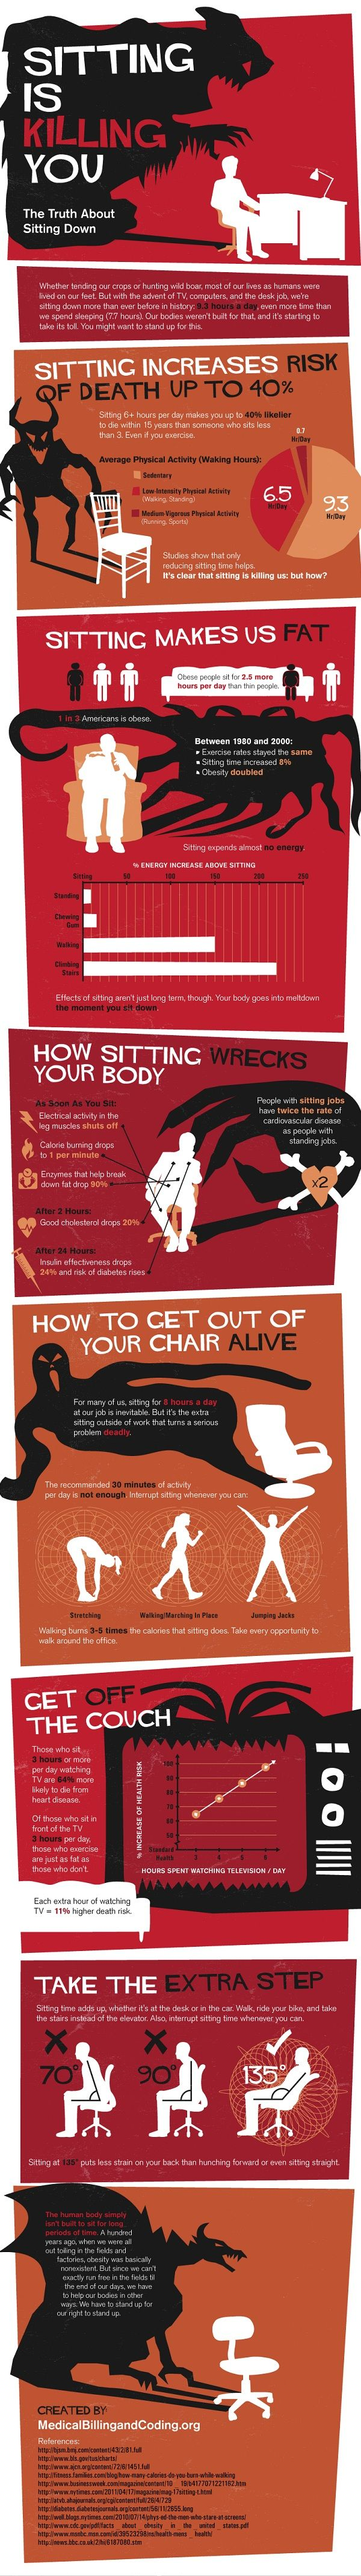 """sitting is killing you"" so read this standing up!  (gonna go for a walk now)"